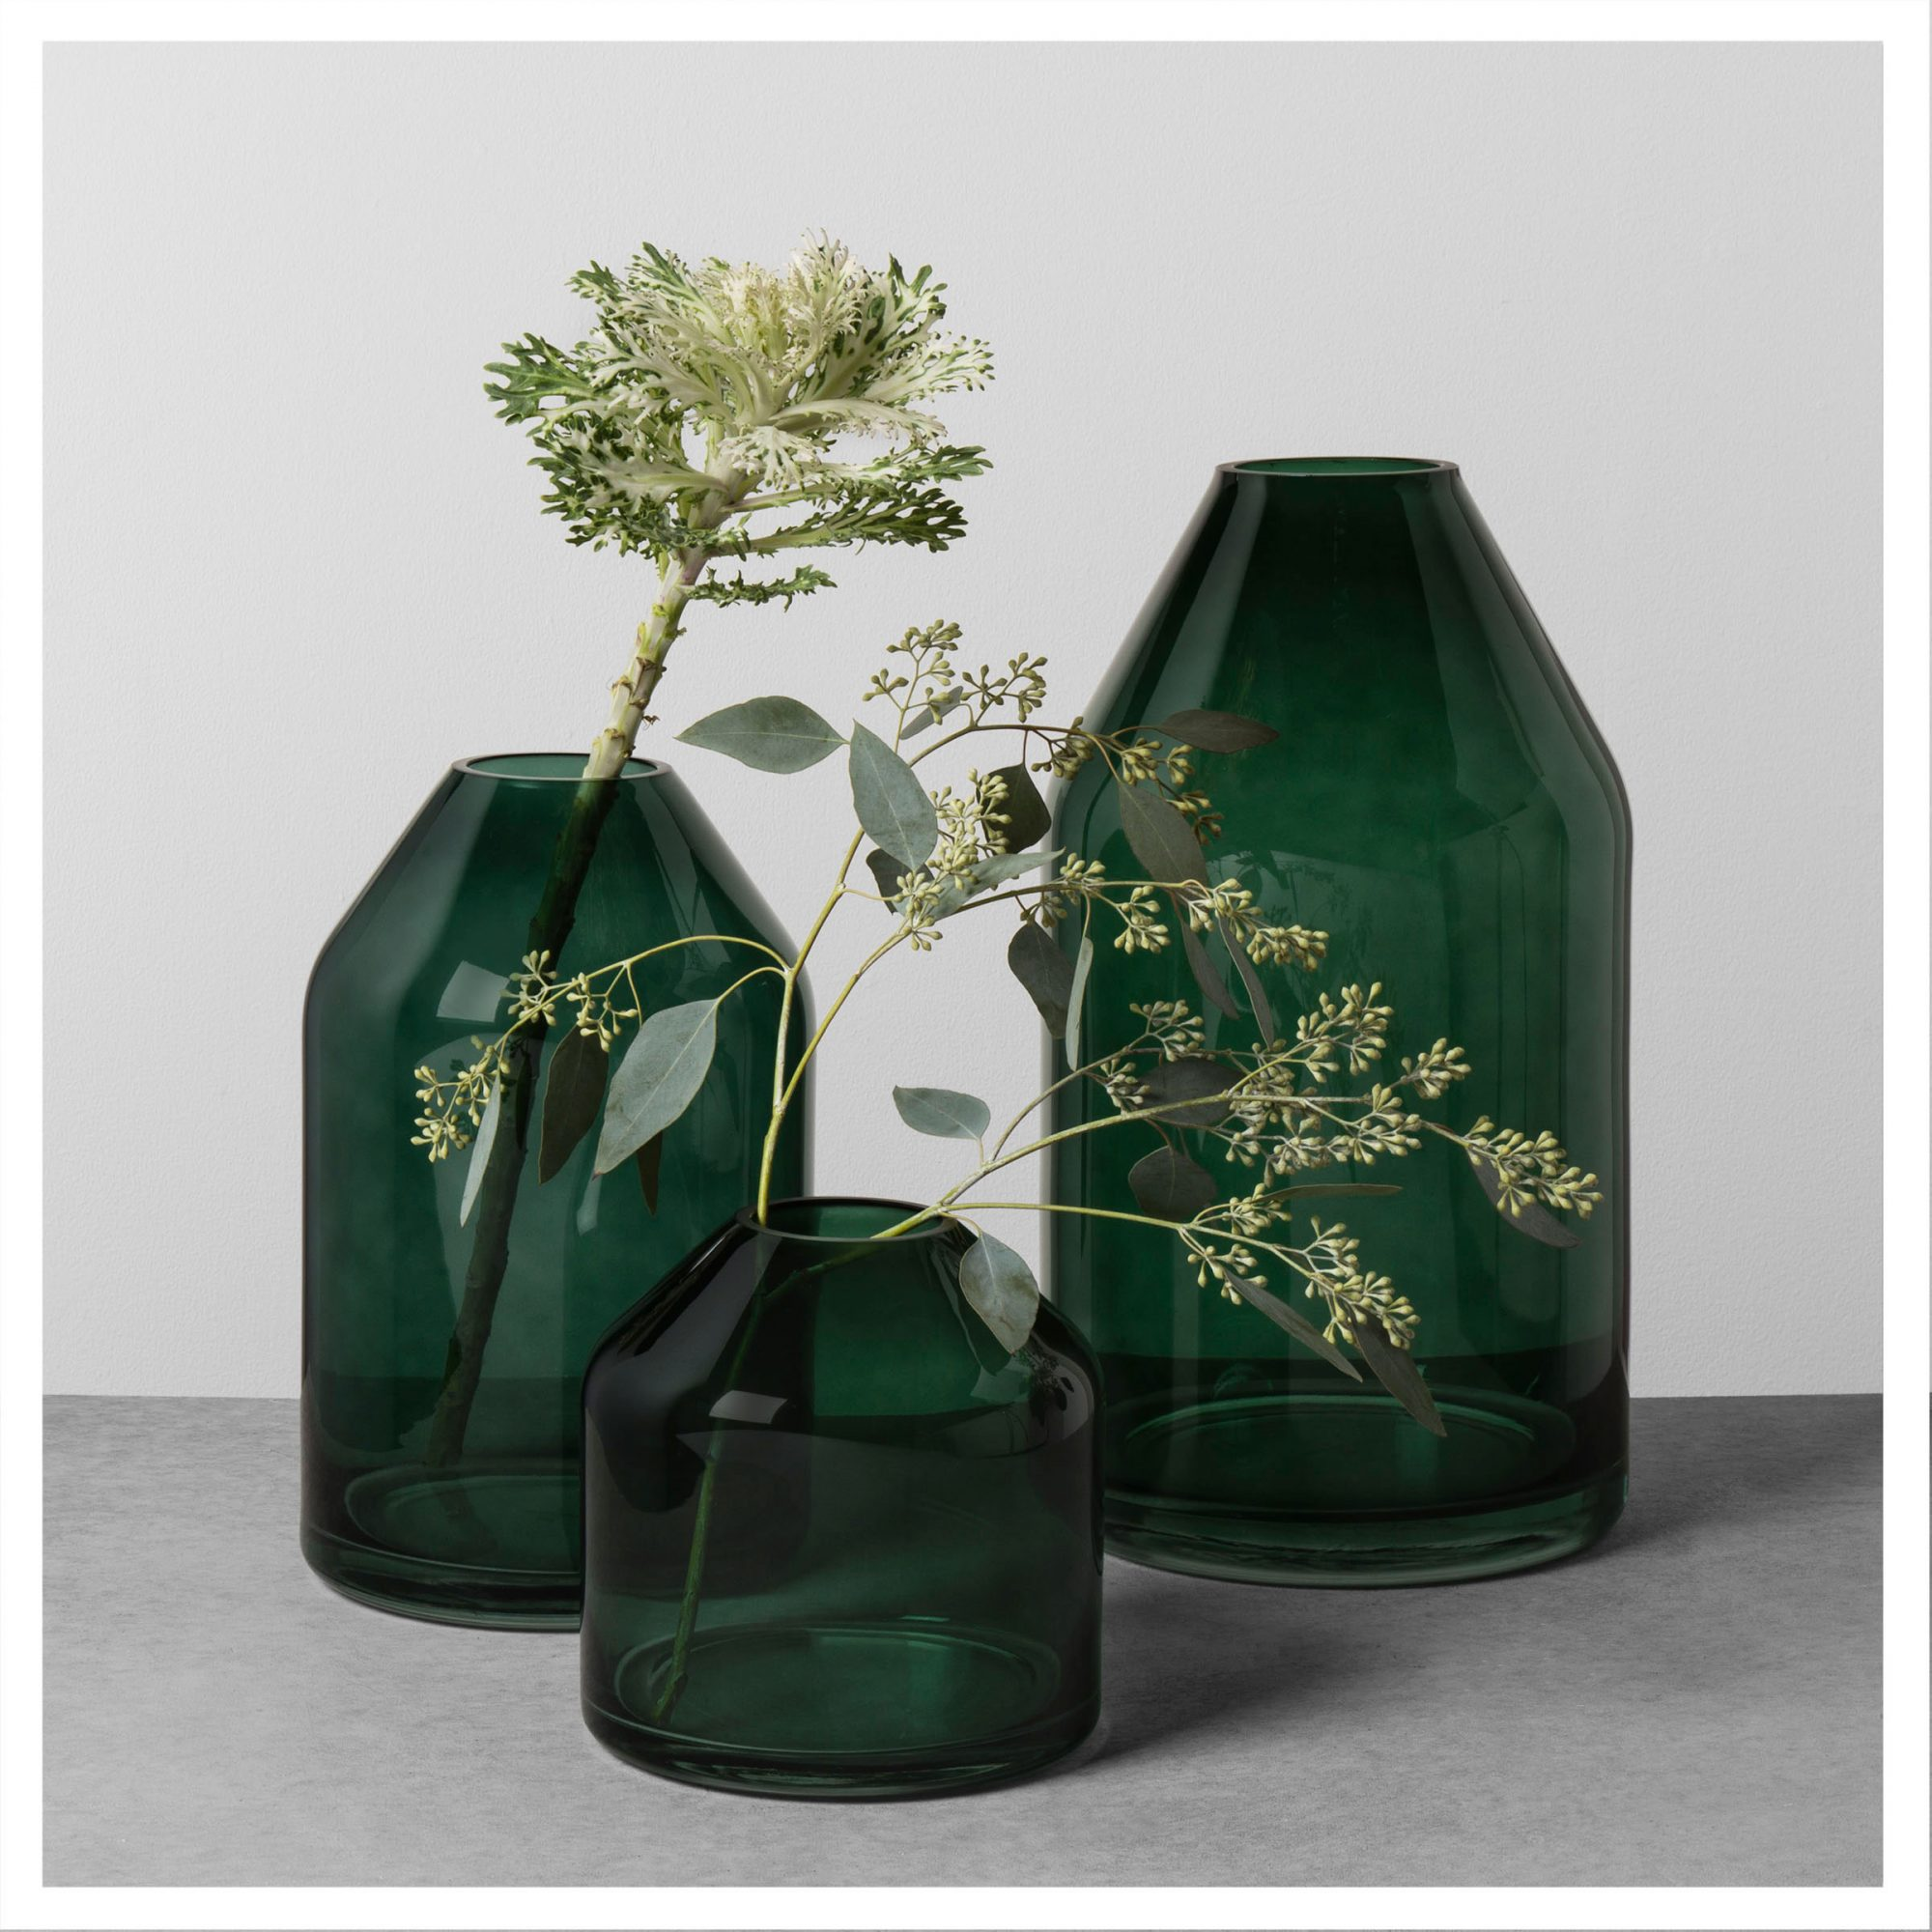 Hearth & Hand with Magnolia Glass Vases